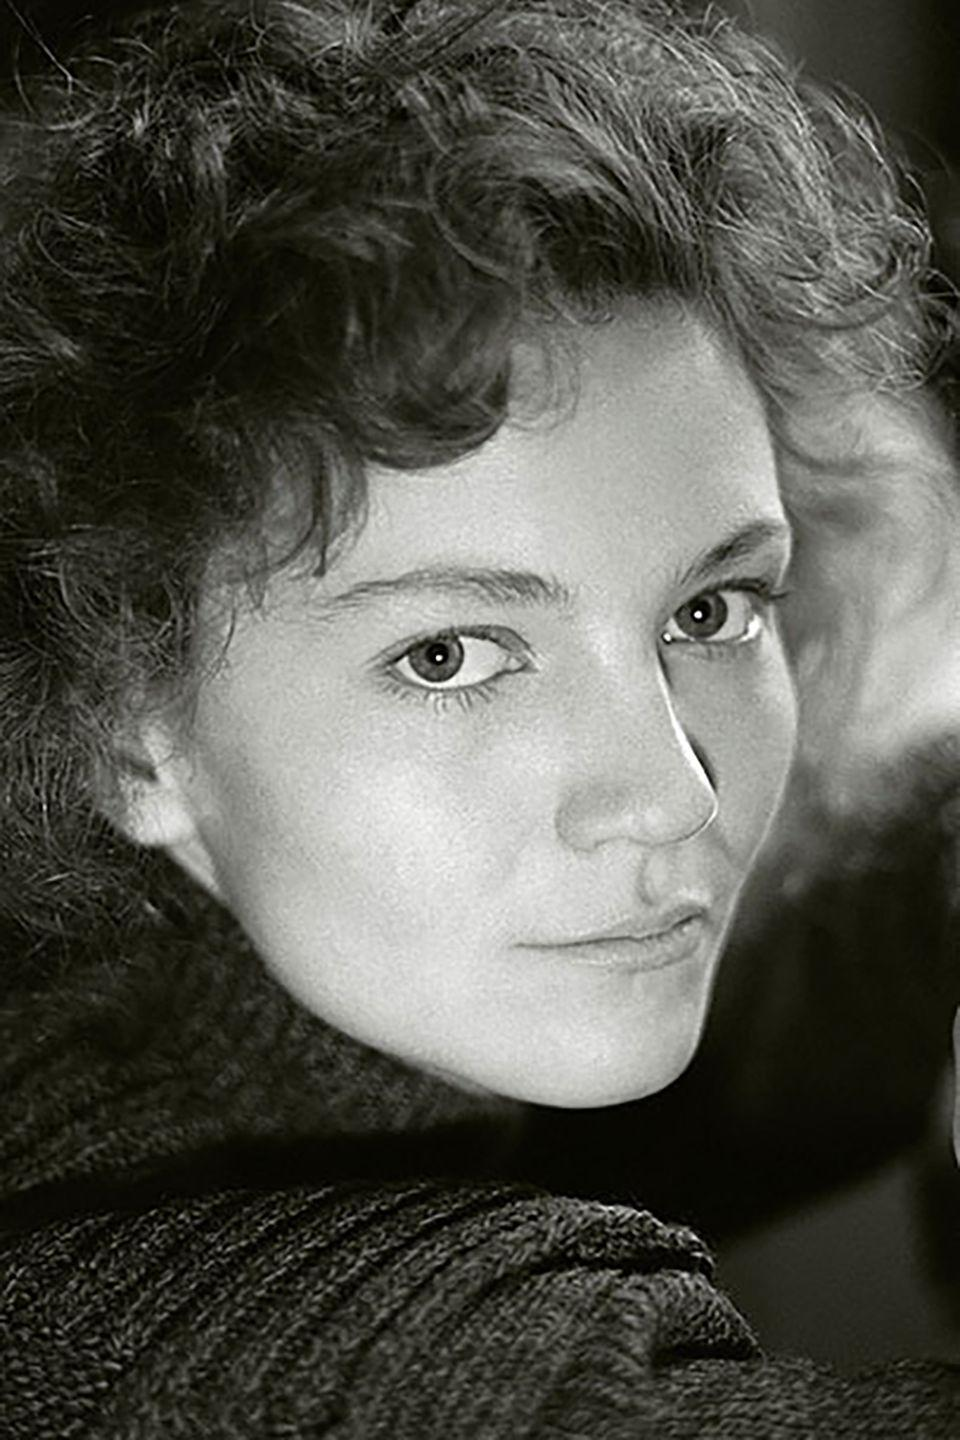 <p>Before audiences saw Joan Allen debut in films like <em>Compromising Positions </em>or <em>Manhunter </em>(made within a year of each other), the actress built a solid career on the stage, winning a Tony for Best Actress for her role in <em>Burn This</em> in 1988.</p>